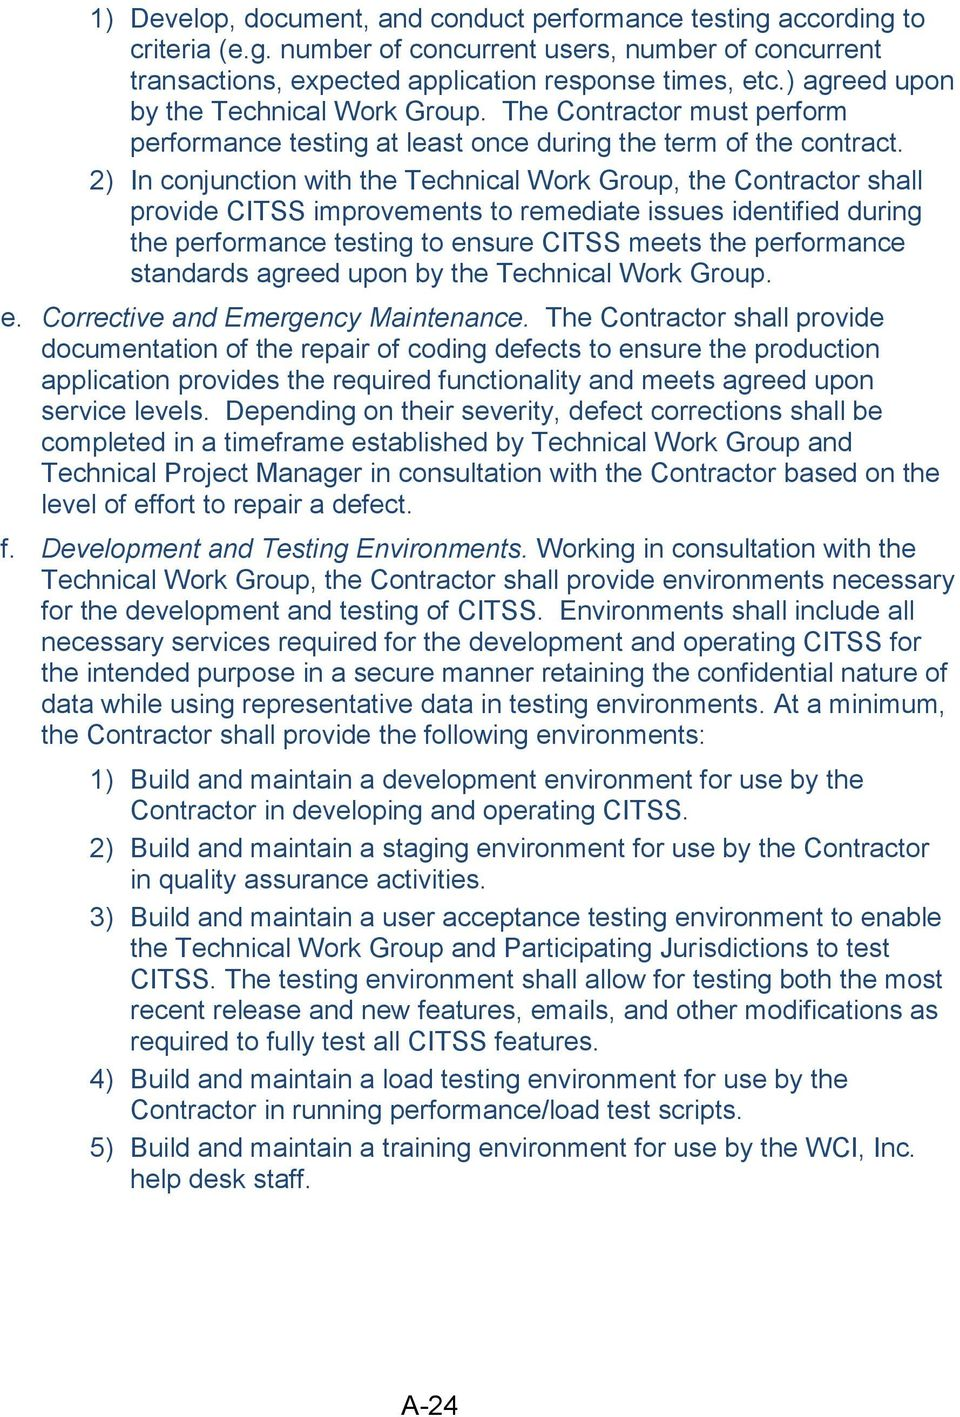 2) In conjunction with the Technical Work Group, the Contractor shall provide CITSS improvements to remediate issues identified during the performance testing to ensure CITSS meets the performance